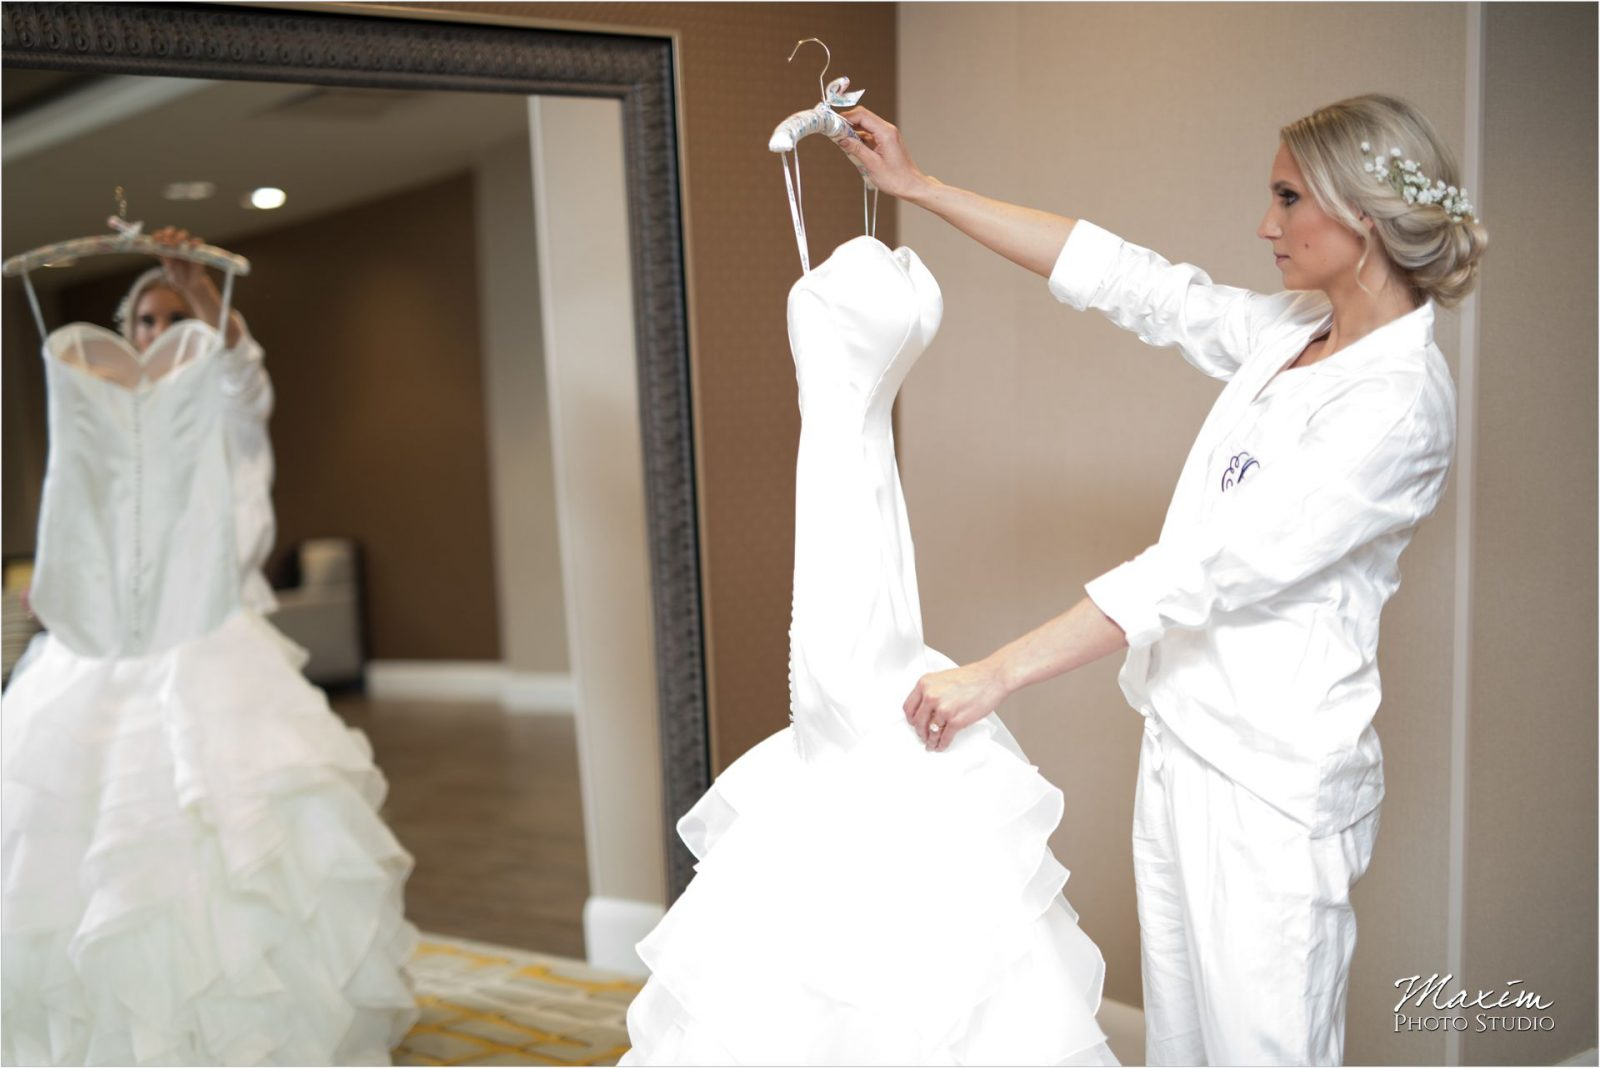 Phoenix Cincinnati Wedding dress bride